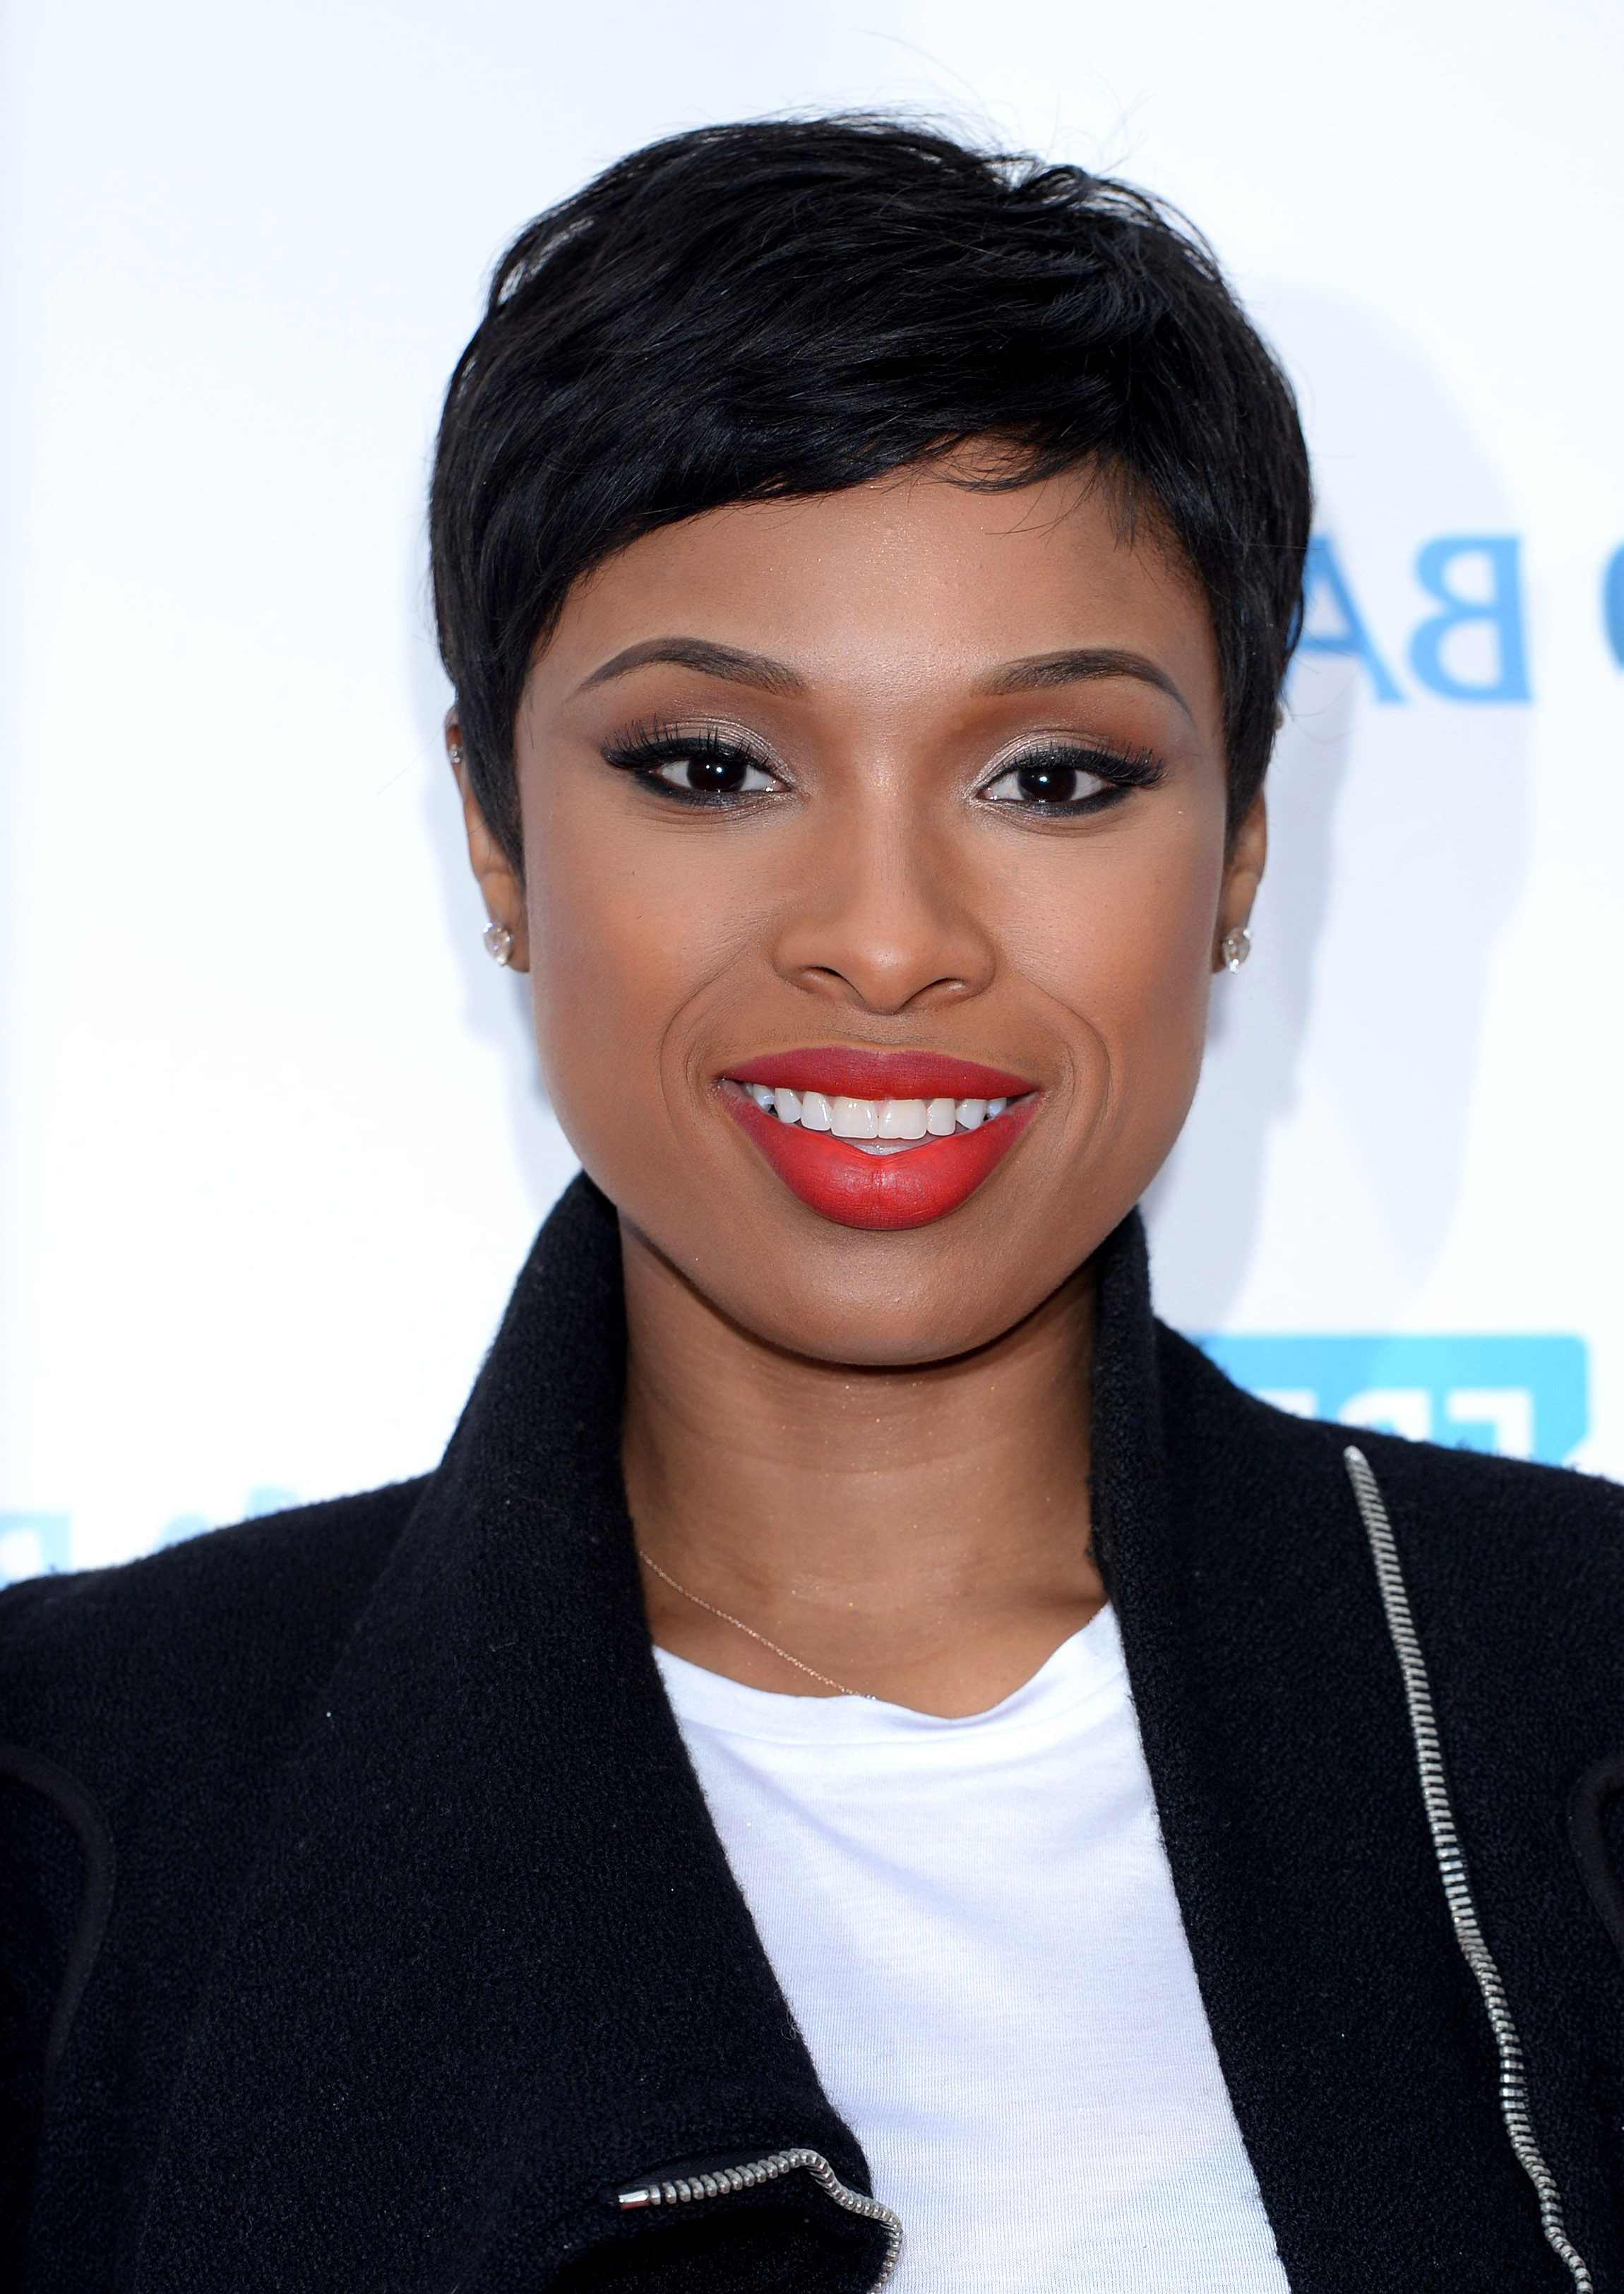 40 Best Short Pixie Cut Hairstyles 2018 – Cute Pixie Haircuts For Women In Soft Short Hairstyles For Black Women (View 22 of 25)